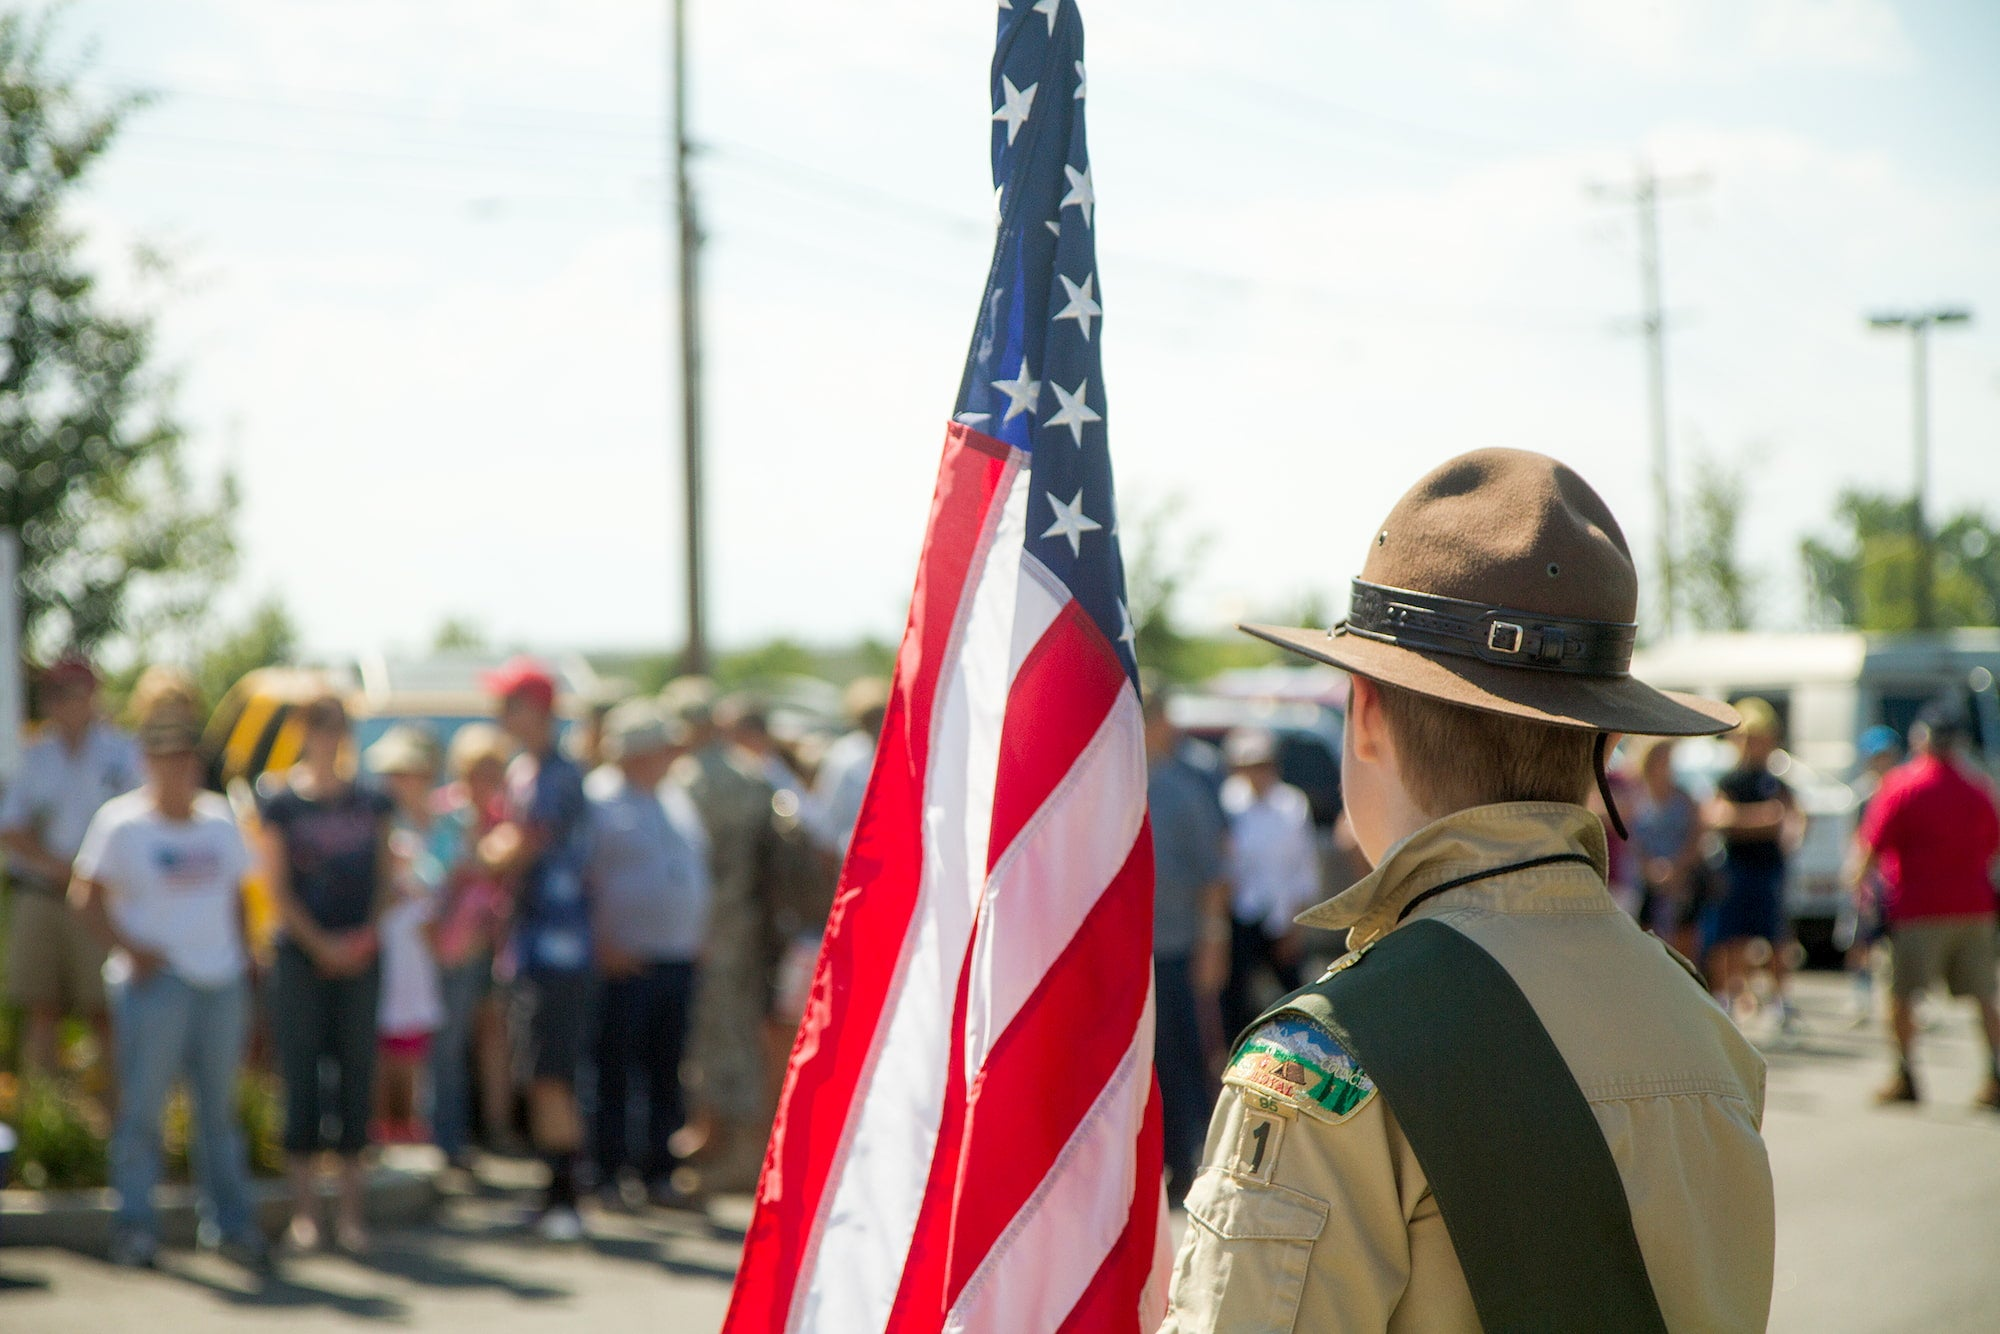 Eagle Scout holding an American flag at an event.